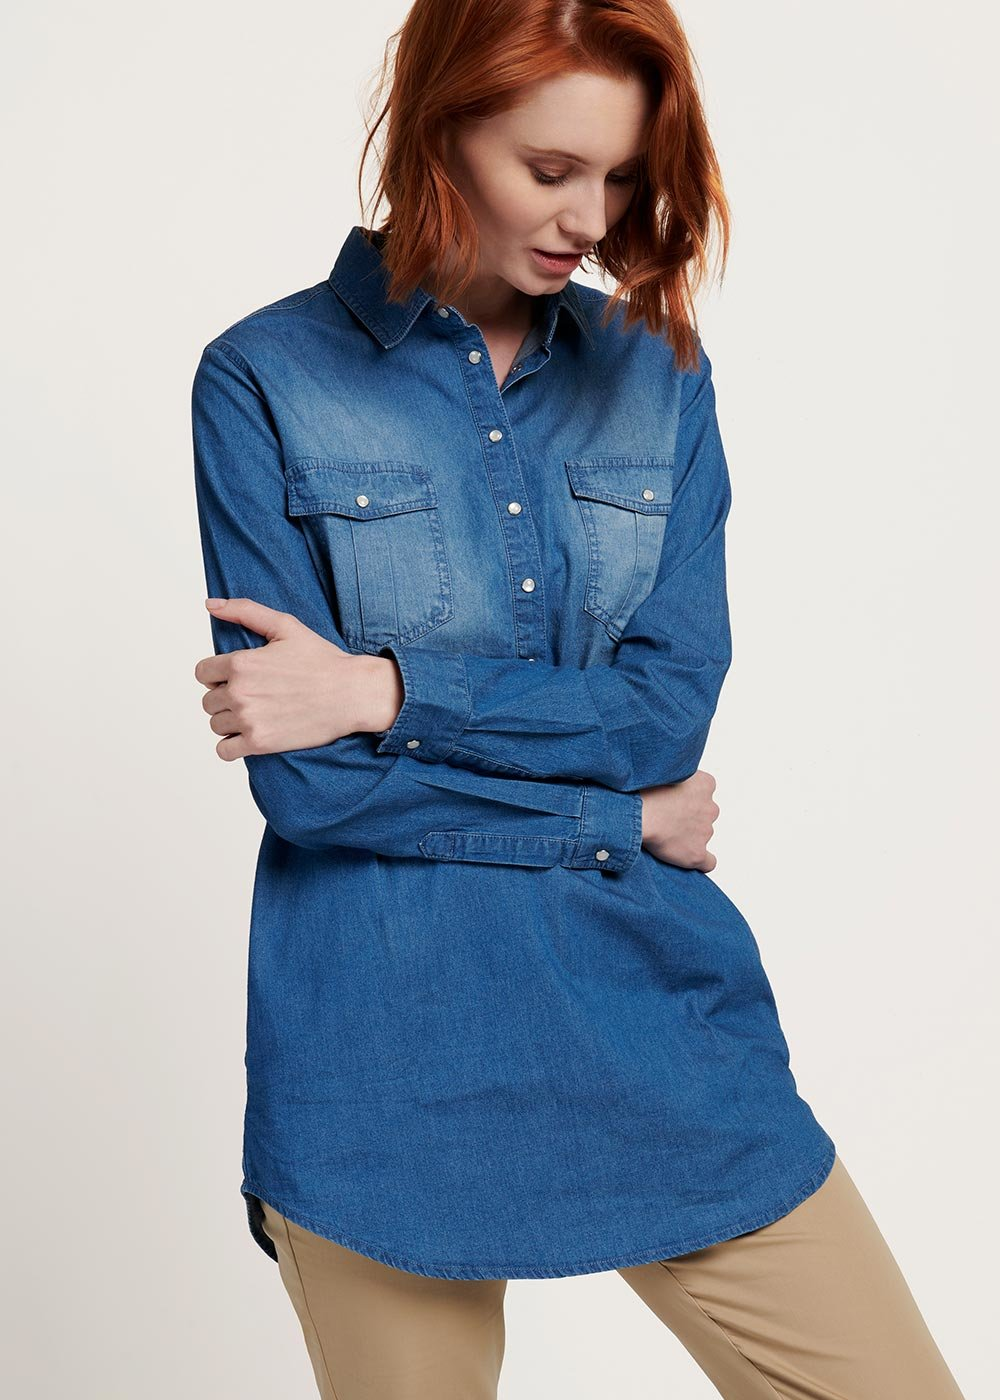 Camicia denim Cassy - Denim - Donna